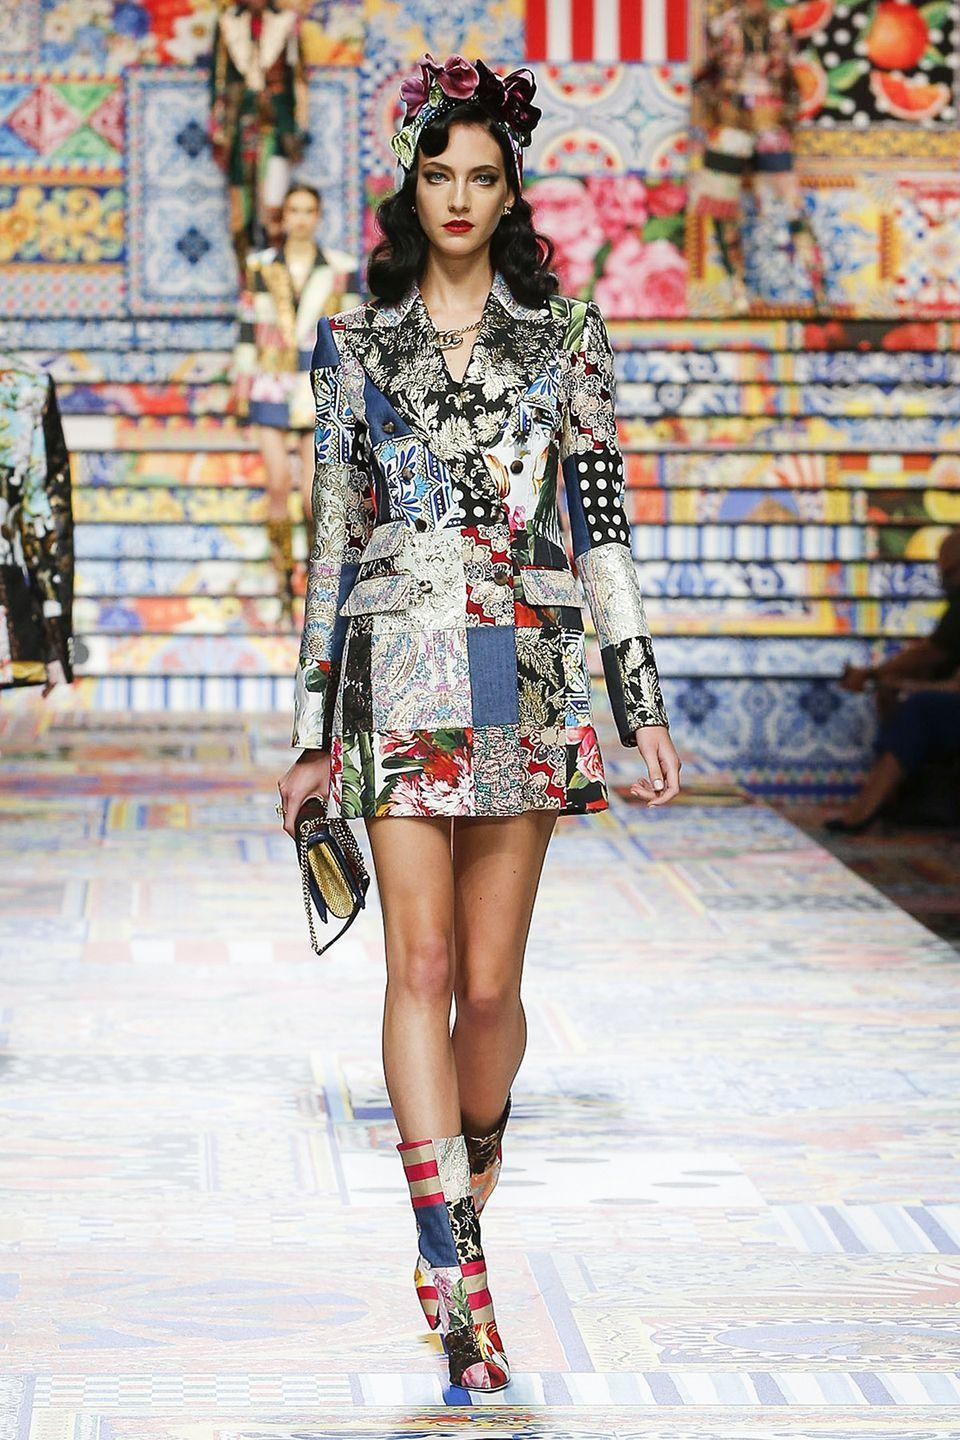 """<p>Spring 2021 will always be remembered as Dolce & Gabbana's """"patchwork collection,"""" an explanation-not-required moniker that future fashion historians can point to as an example of how designers adapted to circumstances beyond their control this season. The house was one of many who saw their access to fabrics affected by the pandemic, instead being forced to use bolts they might have had tucked away for a rainy day. In their case, what was available wasn't slim pickings, but luxe brocades, floral silks, and dotted chiffons. Intriguingly, the print combos both exaggerated and disguised different signature aspects of Dolce. The bold clashes furthered the over-the-top feeling they've made a calling card while simultaneously making it harder to spot their Italian bombshell. There were bustier dresses and thigh-high slits (of course), but they didn't whistle quite as loudly when tucked in amongst prints that positively shouted. <em>—Leah Melby Clinton</em></p>"""